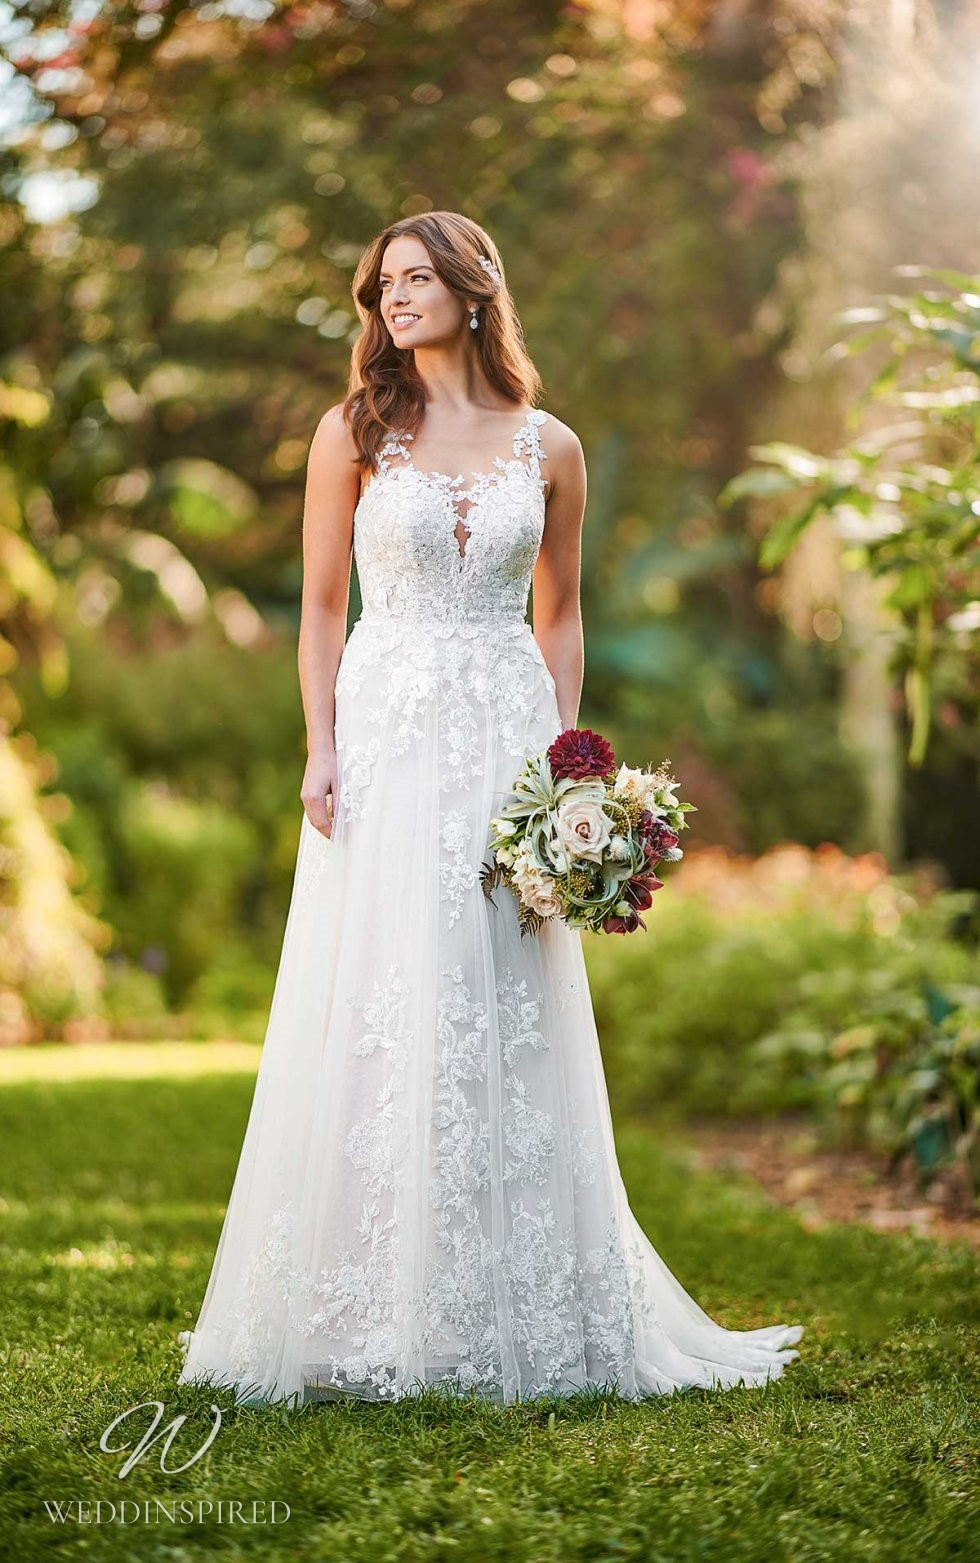 An Essense of Australia lace and tulle A-line wedding dress